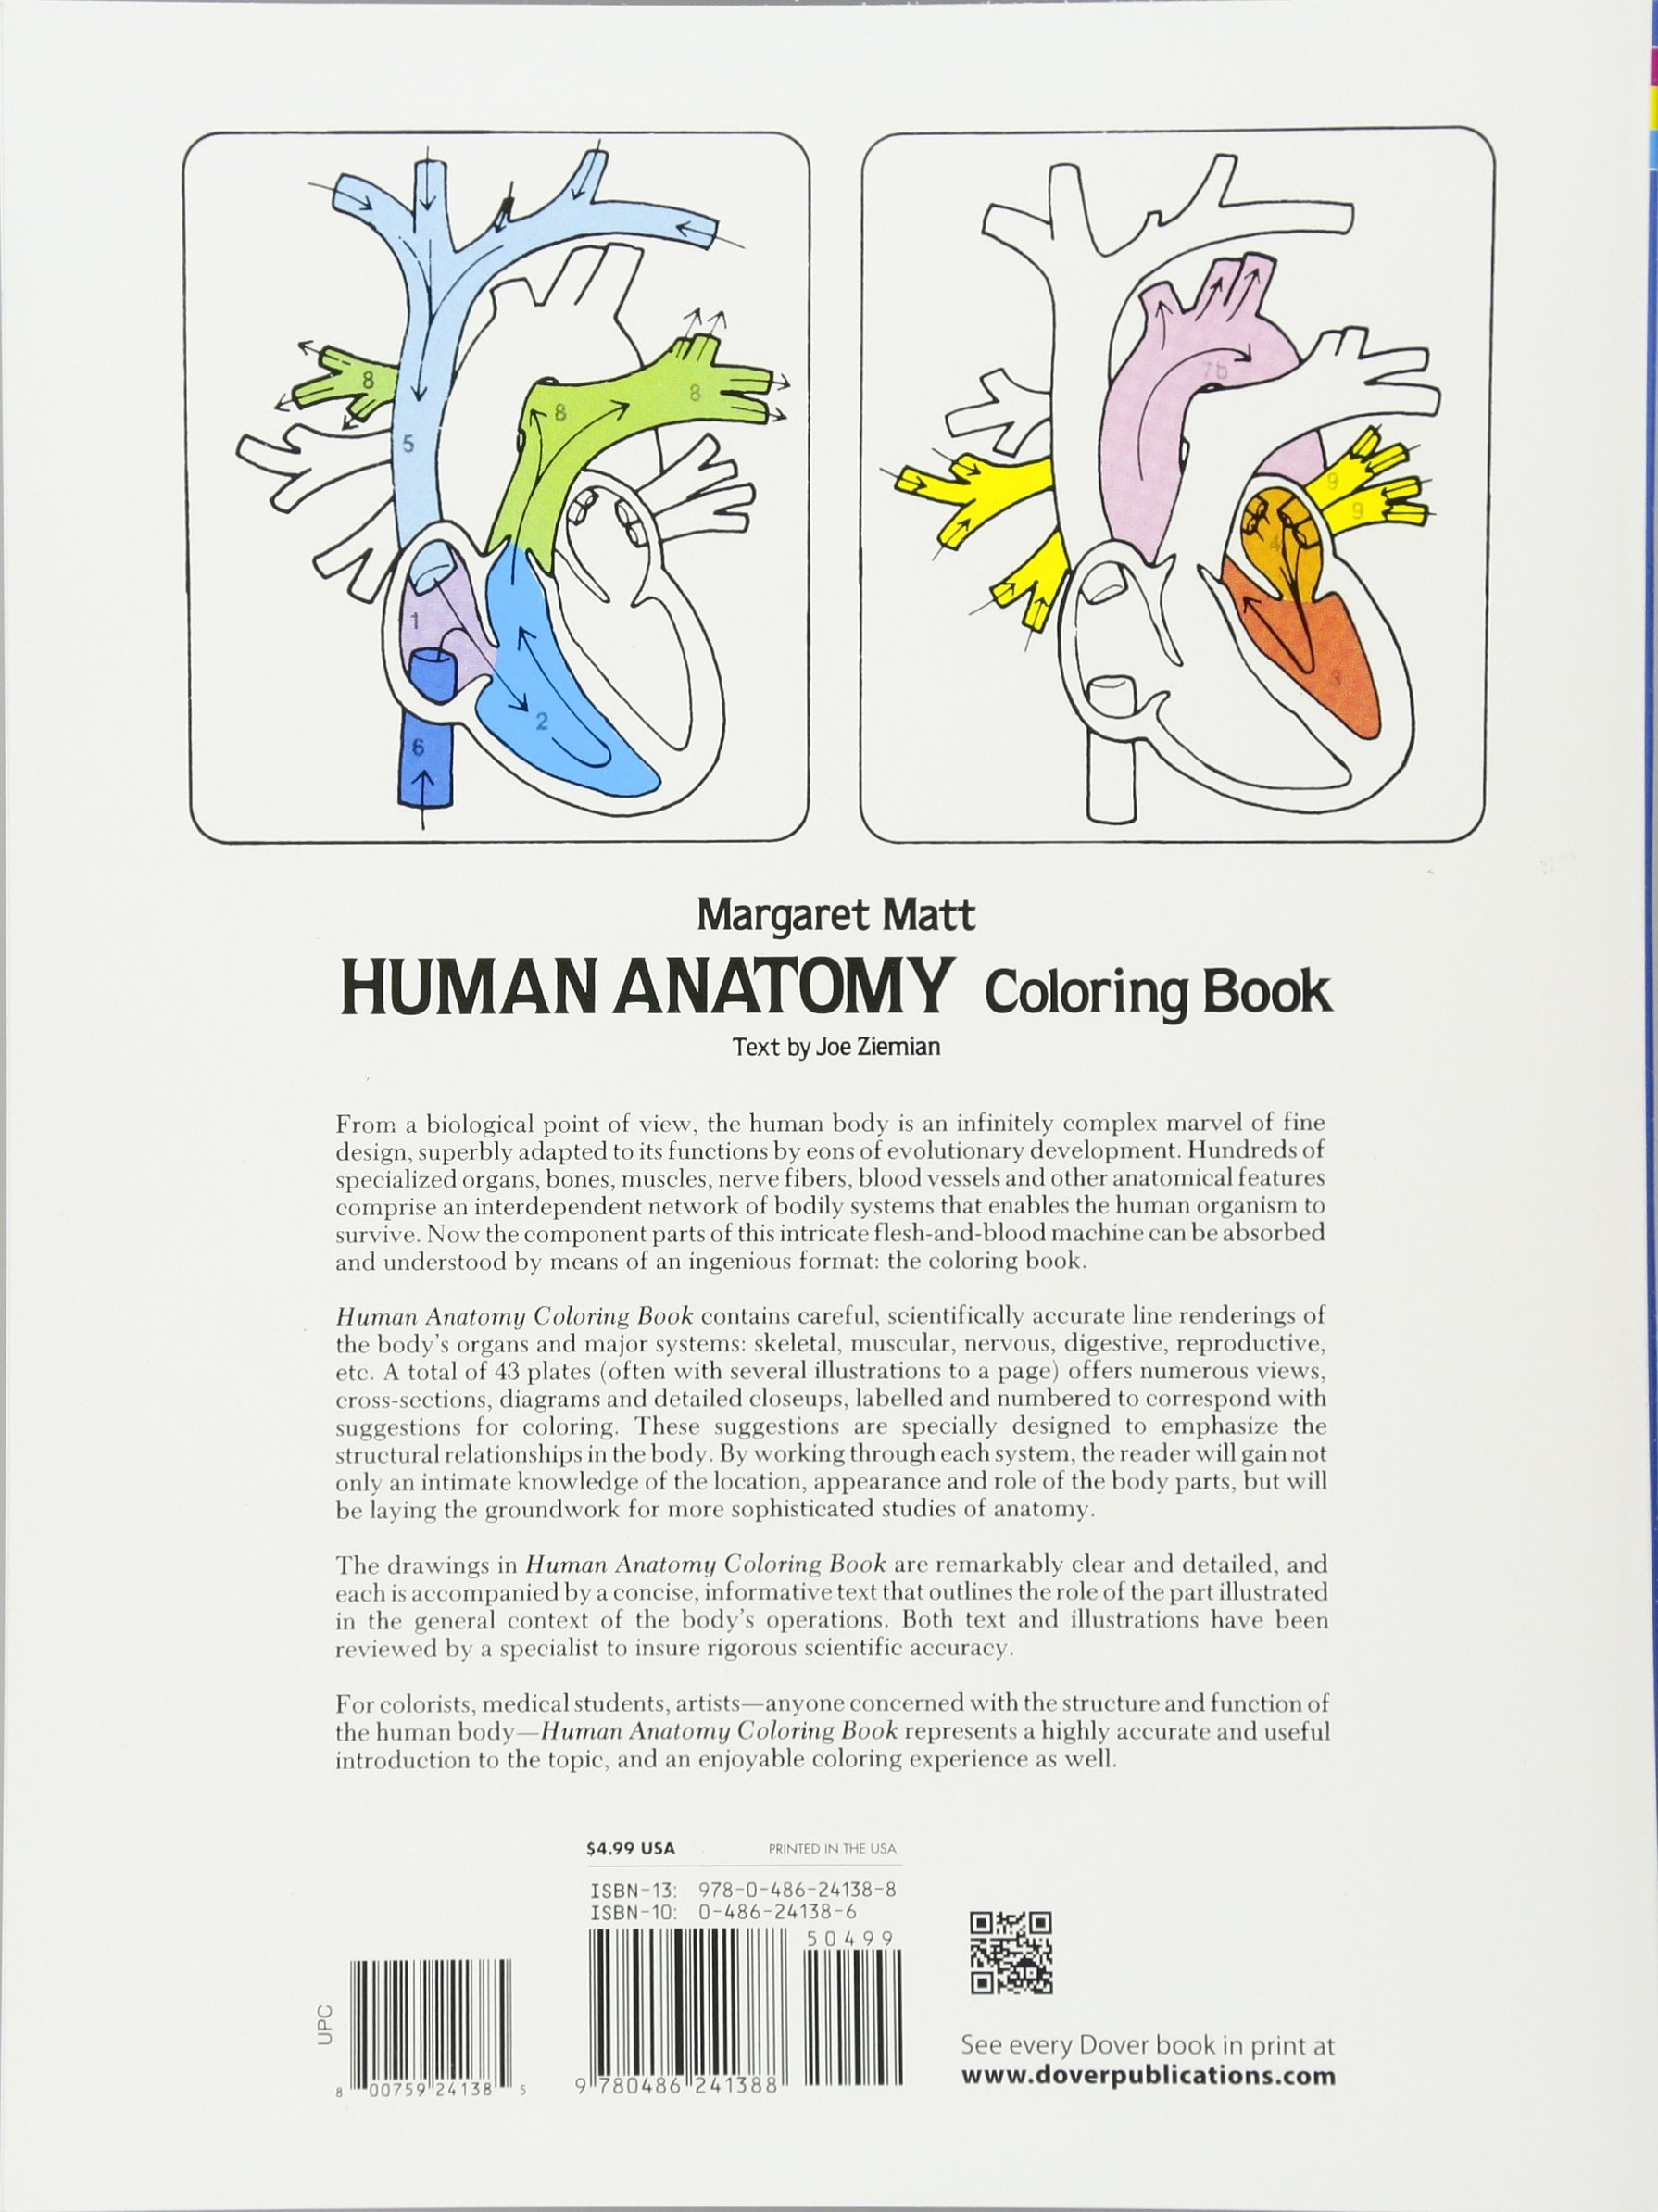 Human Anatomy Coloring Book Dover Childrens Science Books Margaret Matt Joe Ziemian 0000486241386 Amazon